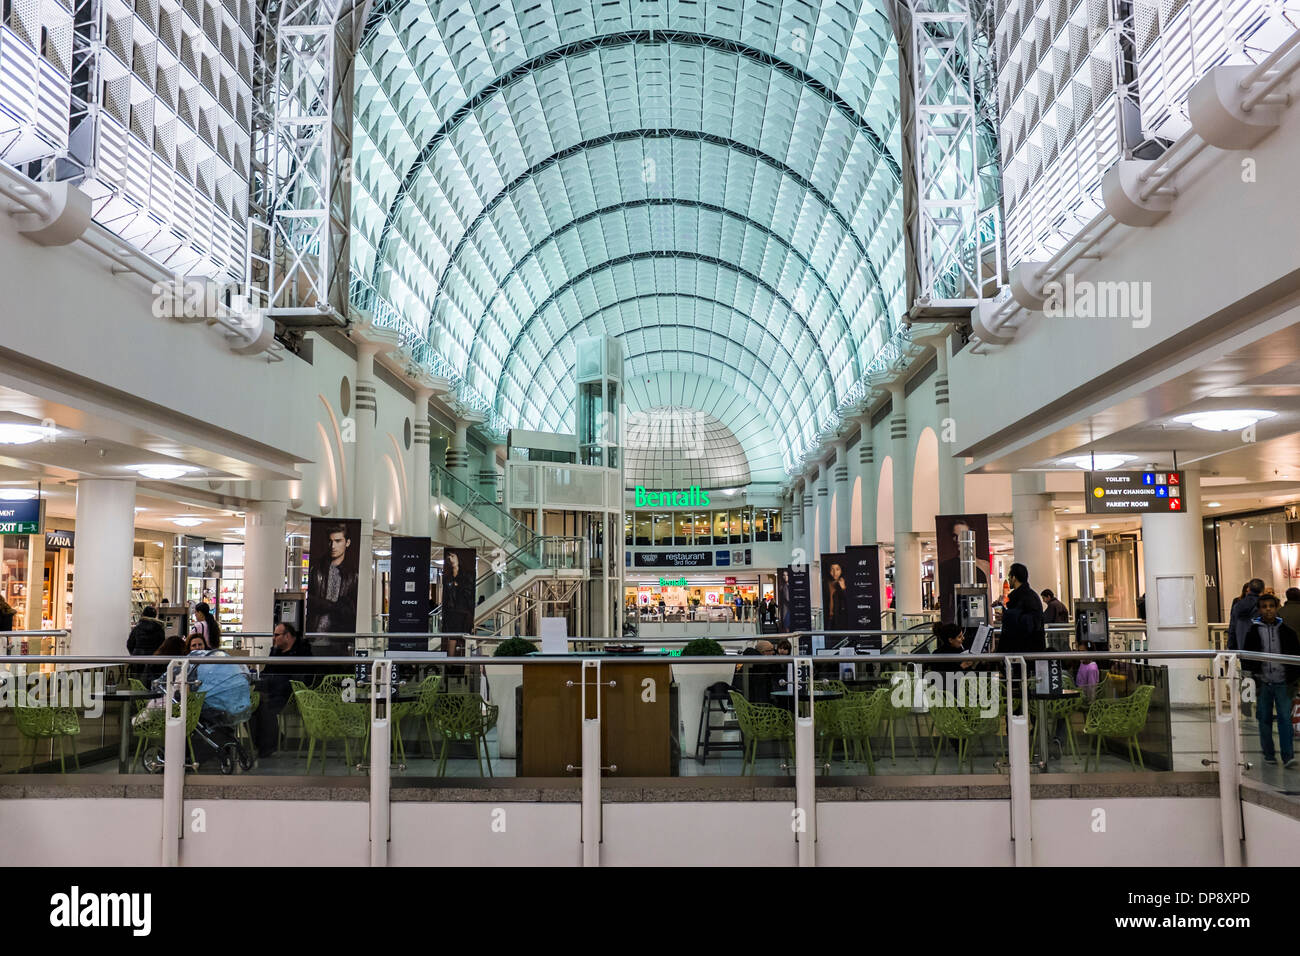 Arched roof of the The Bentall Centre, shopping mall - Kingston upon Thames, Greater London - Stock Image